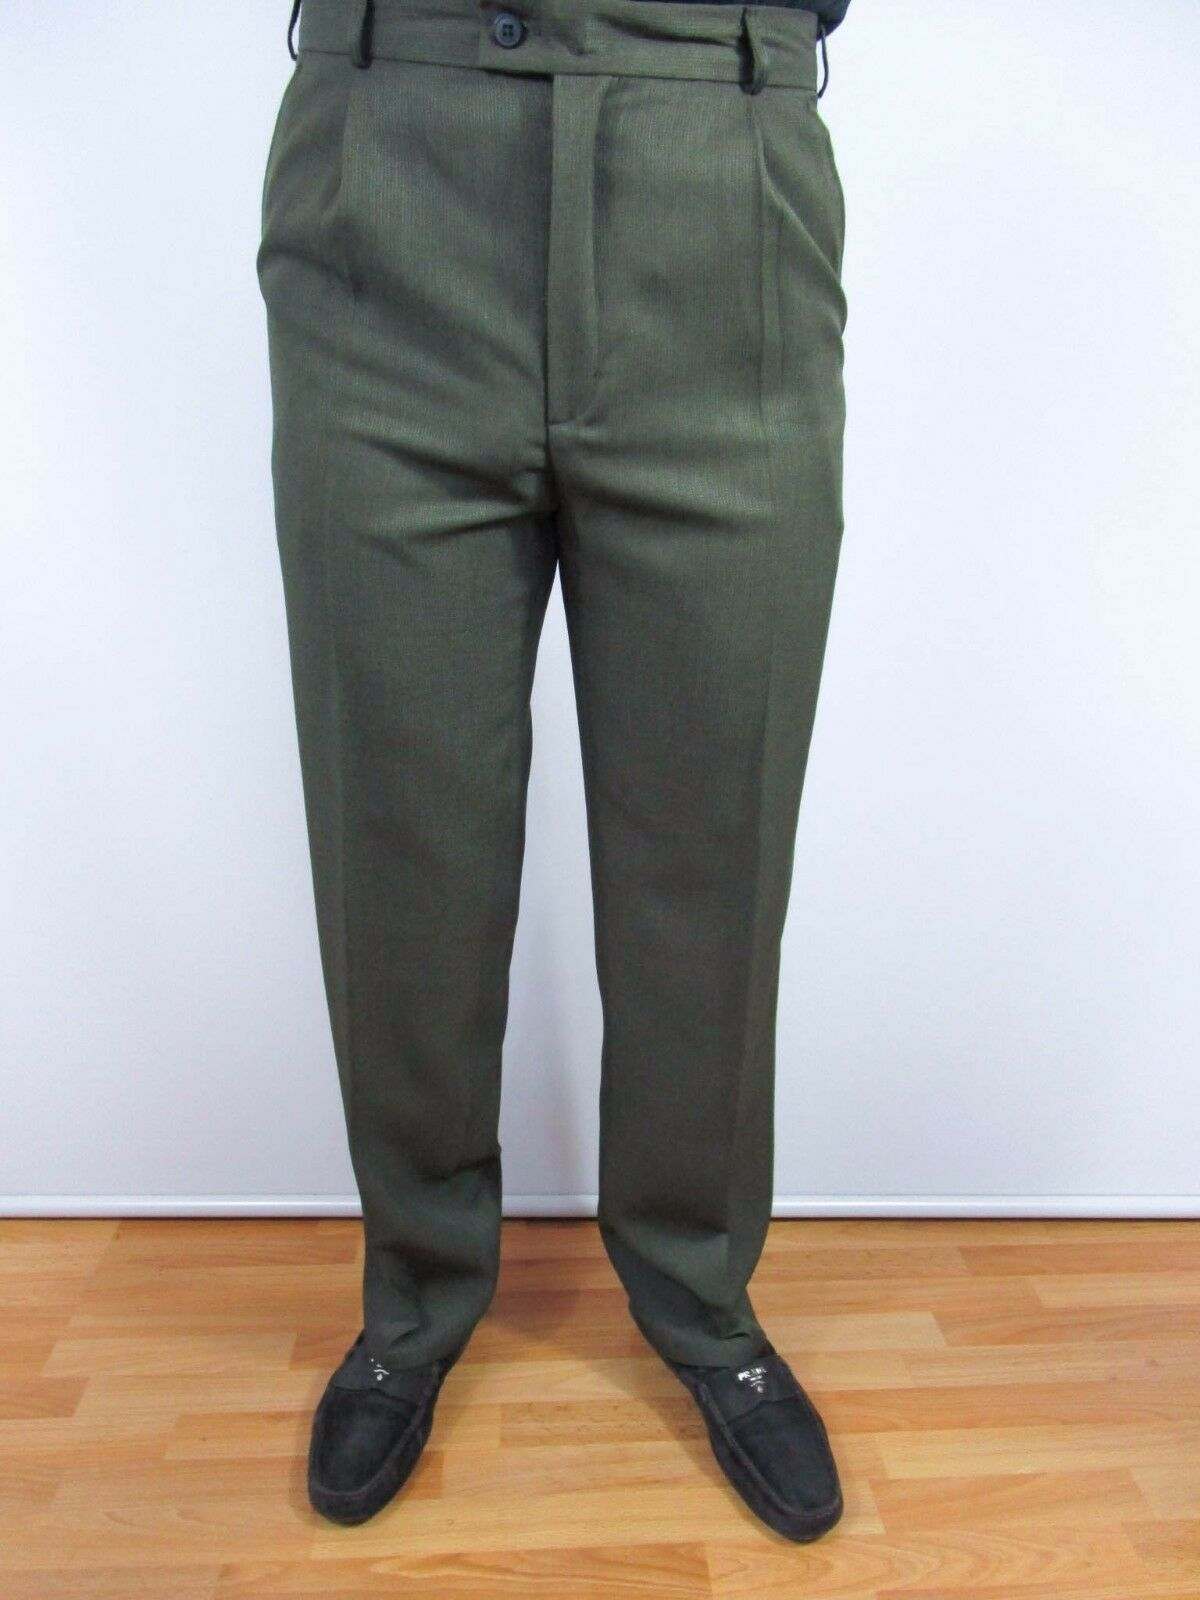 Men's Made in  Vtg Formal Office Tailored Suit Pants Trousers sz M BI33